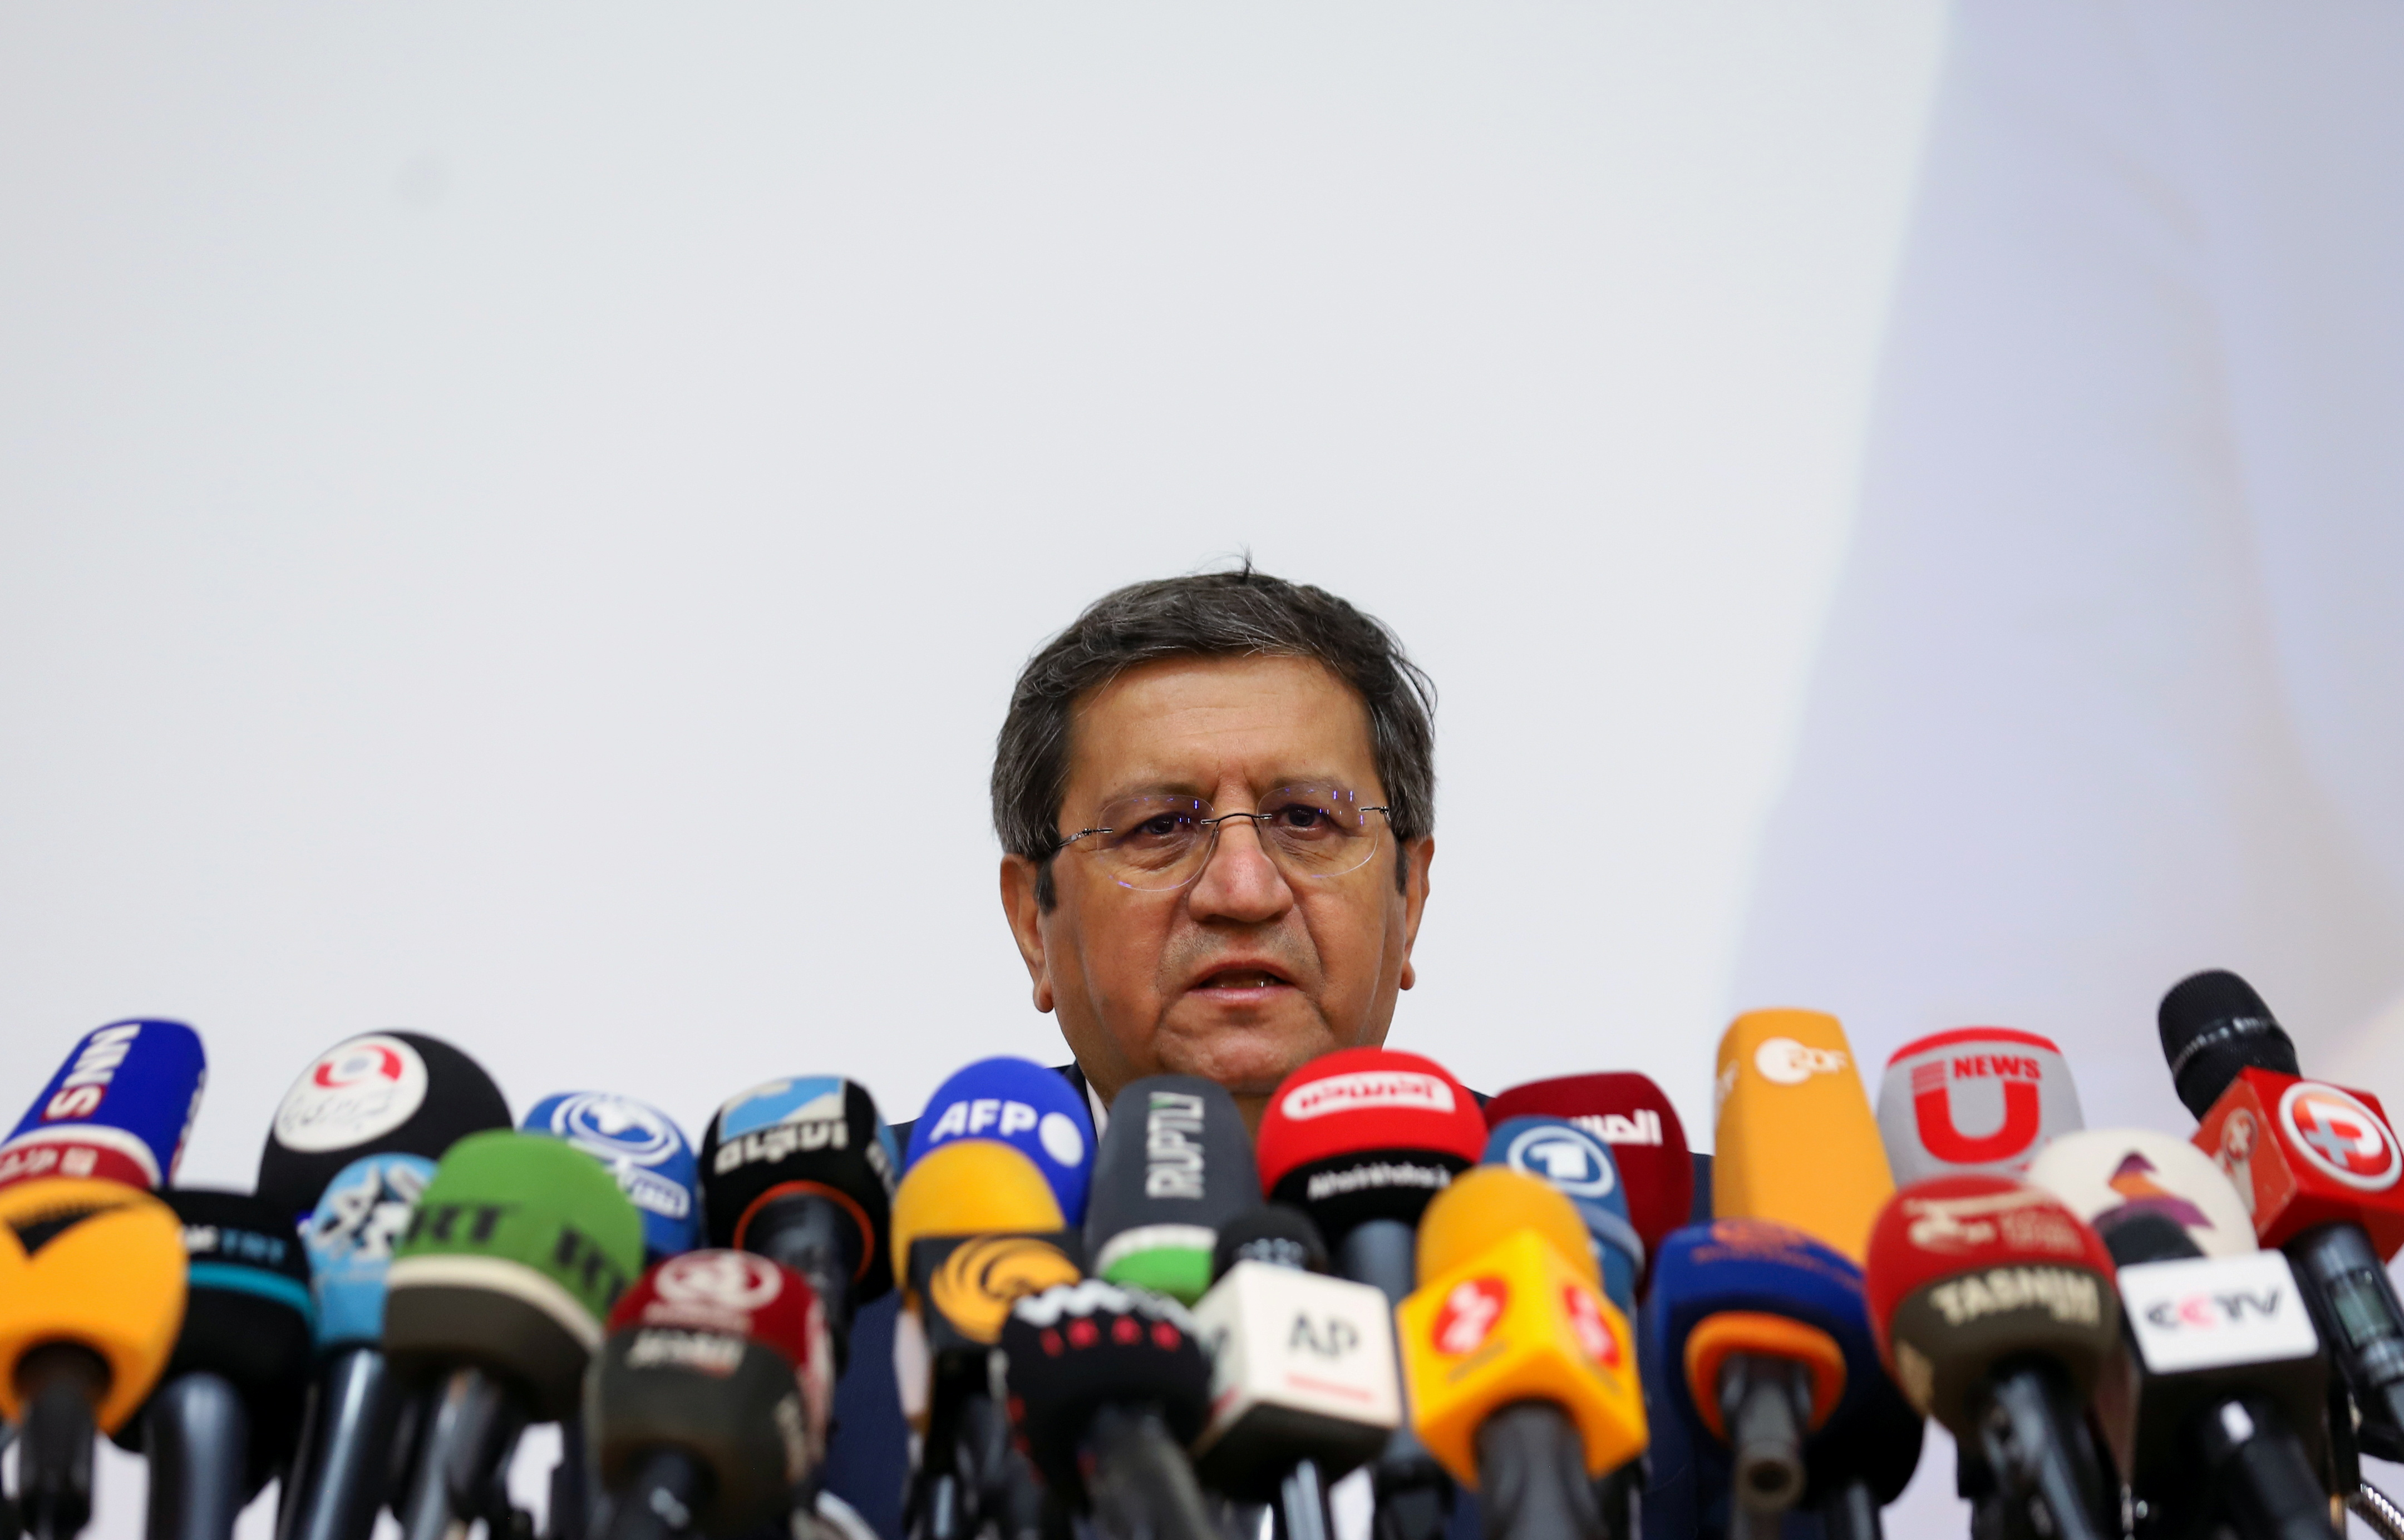 Presidential candidate Abdolnaser Hemmati speaks during a press conference in Tehran, Iran June 15, 2021. Majid Asgaripour/WANA (West Asia News Agency) via REUTERS